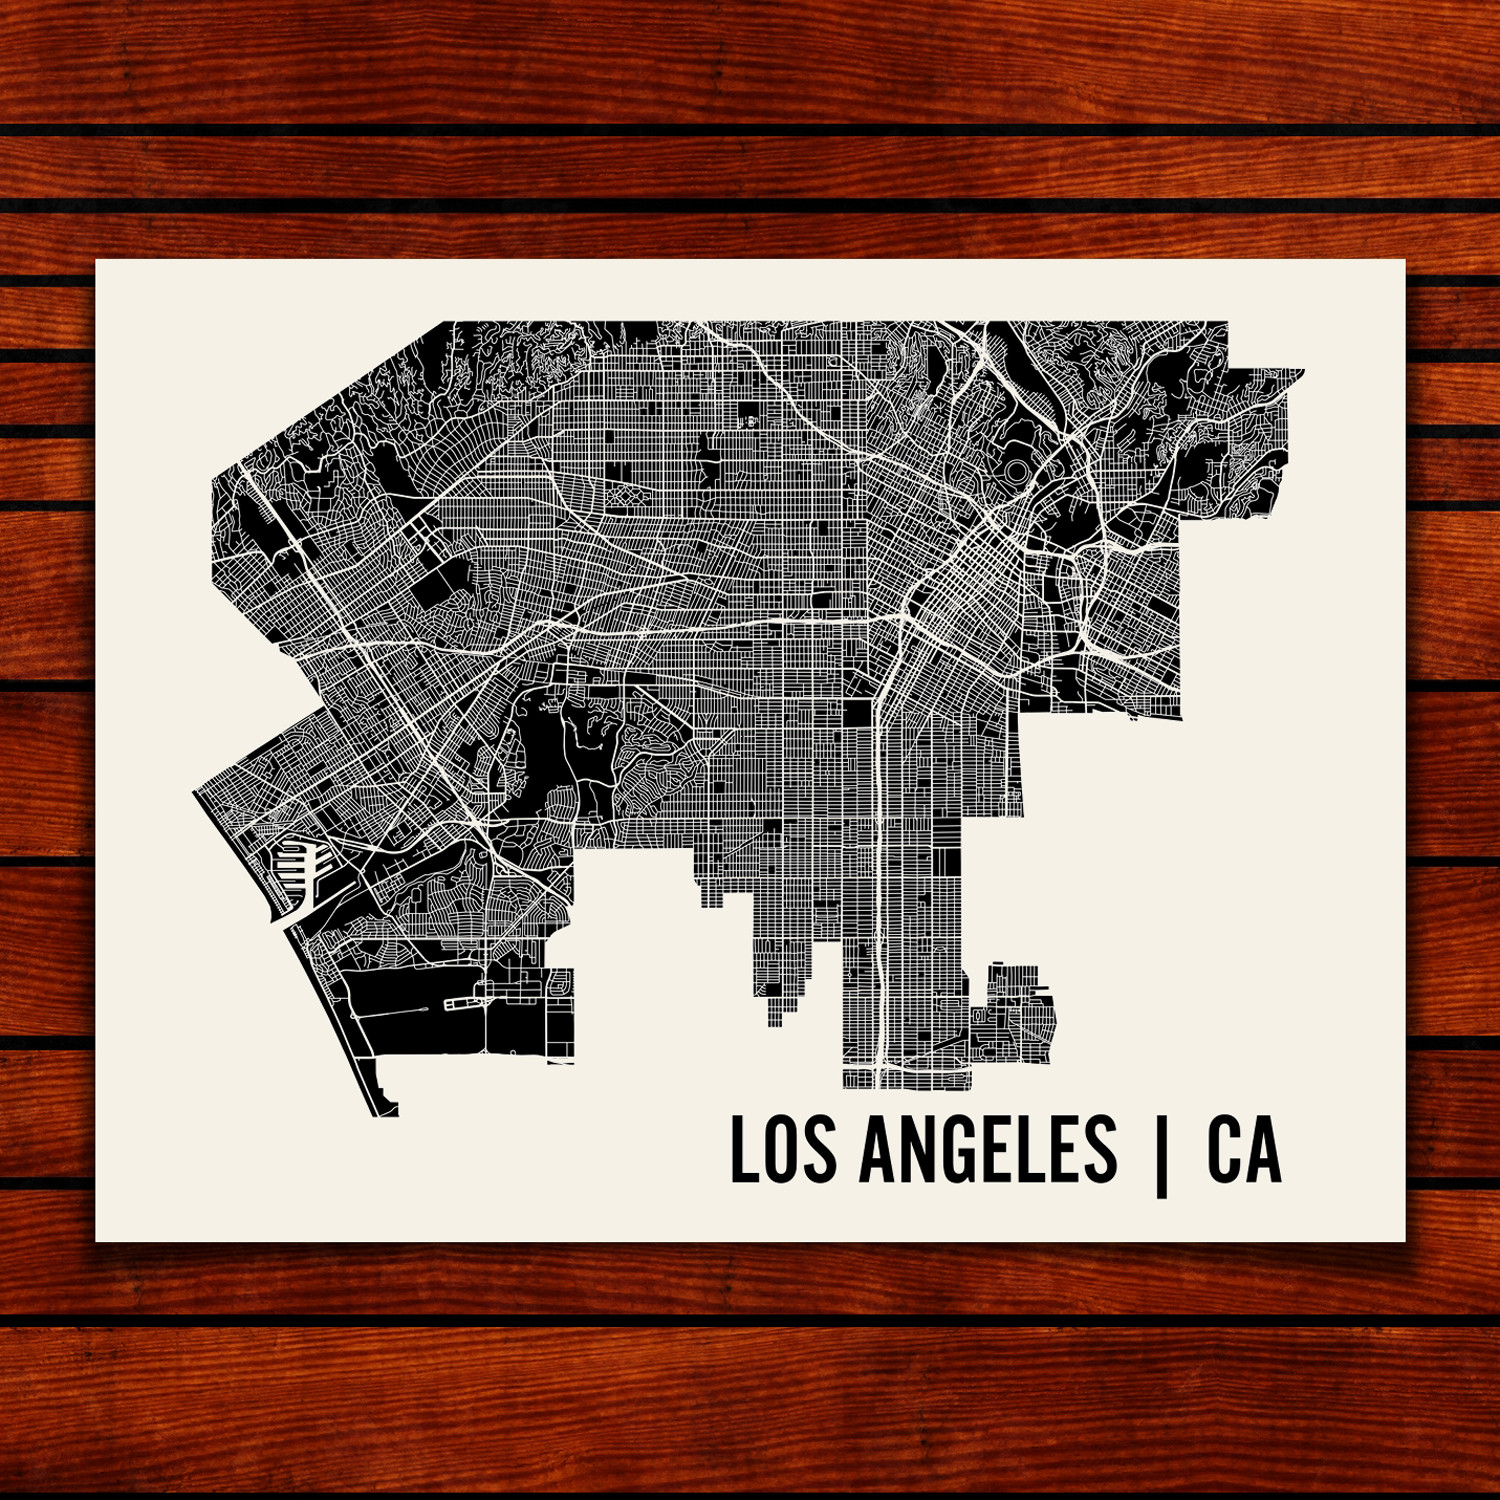 Los Angeles Map Art Print Mr City Printing Touch Of Modern - Los angeles map by city